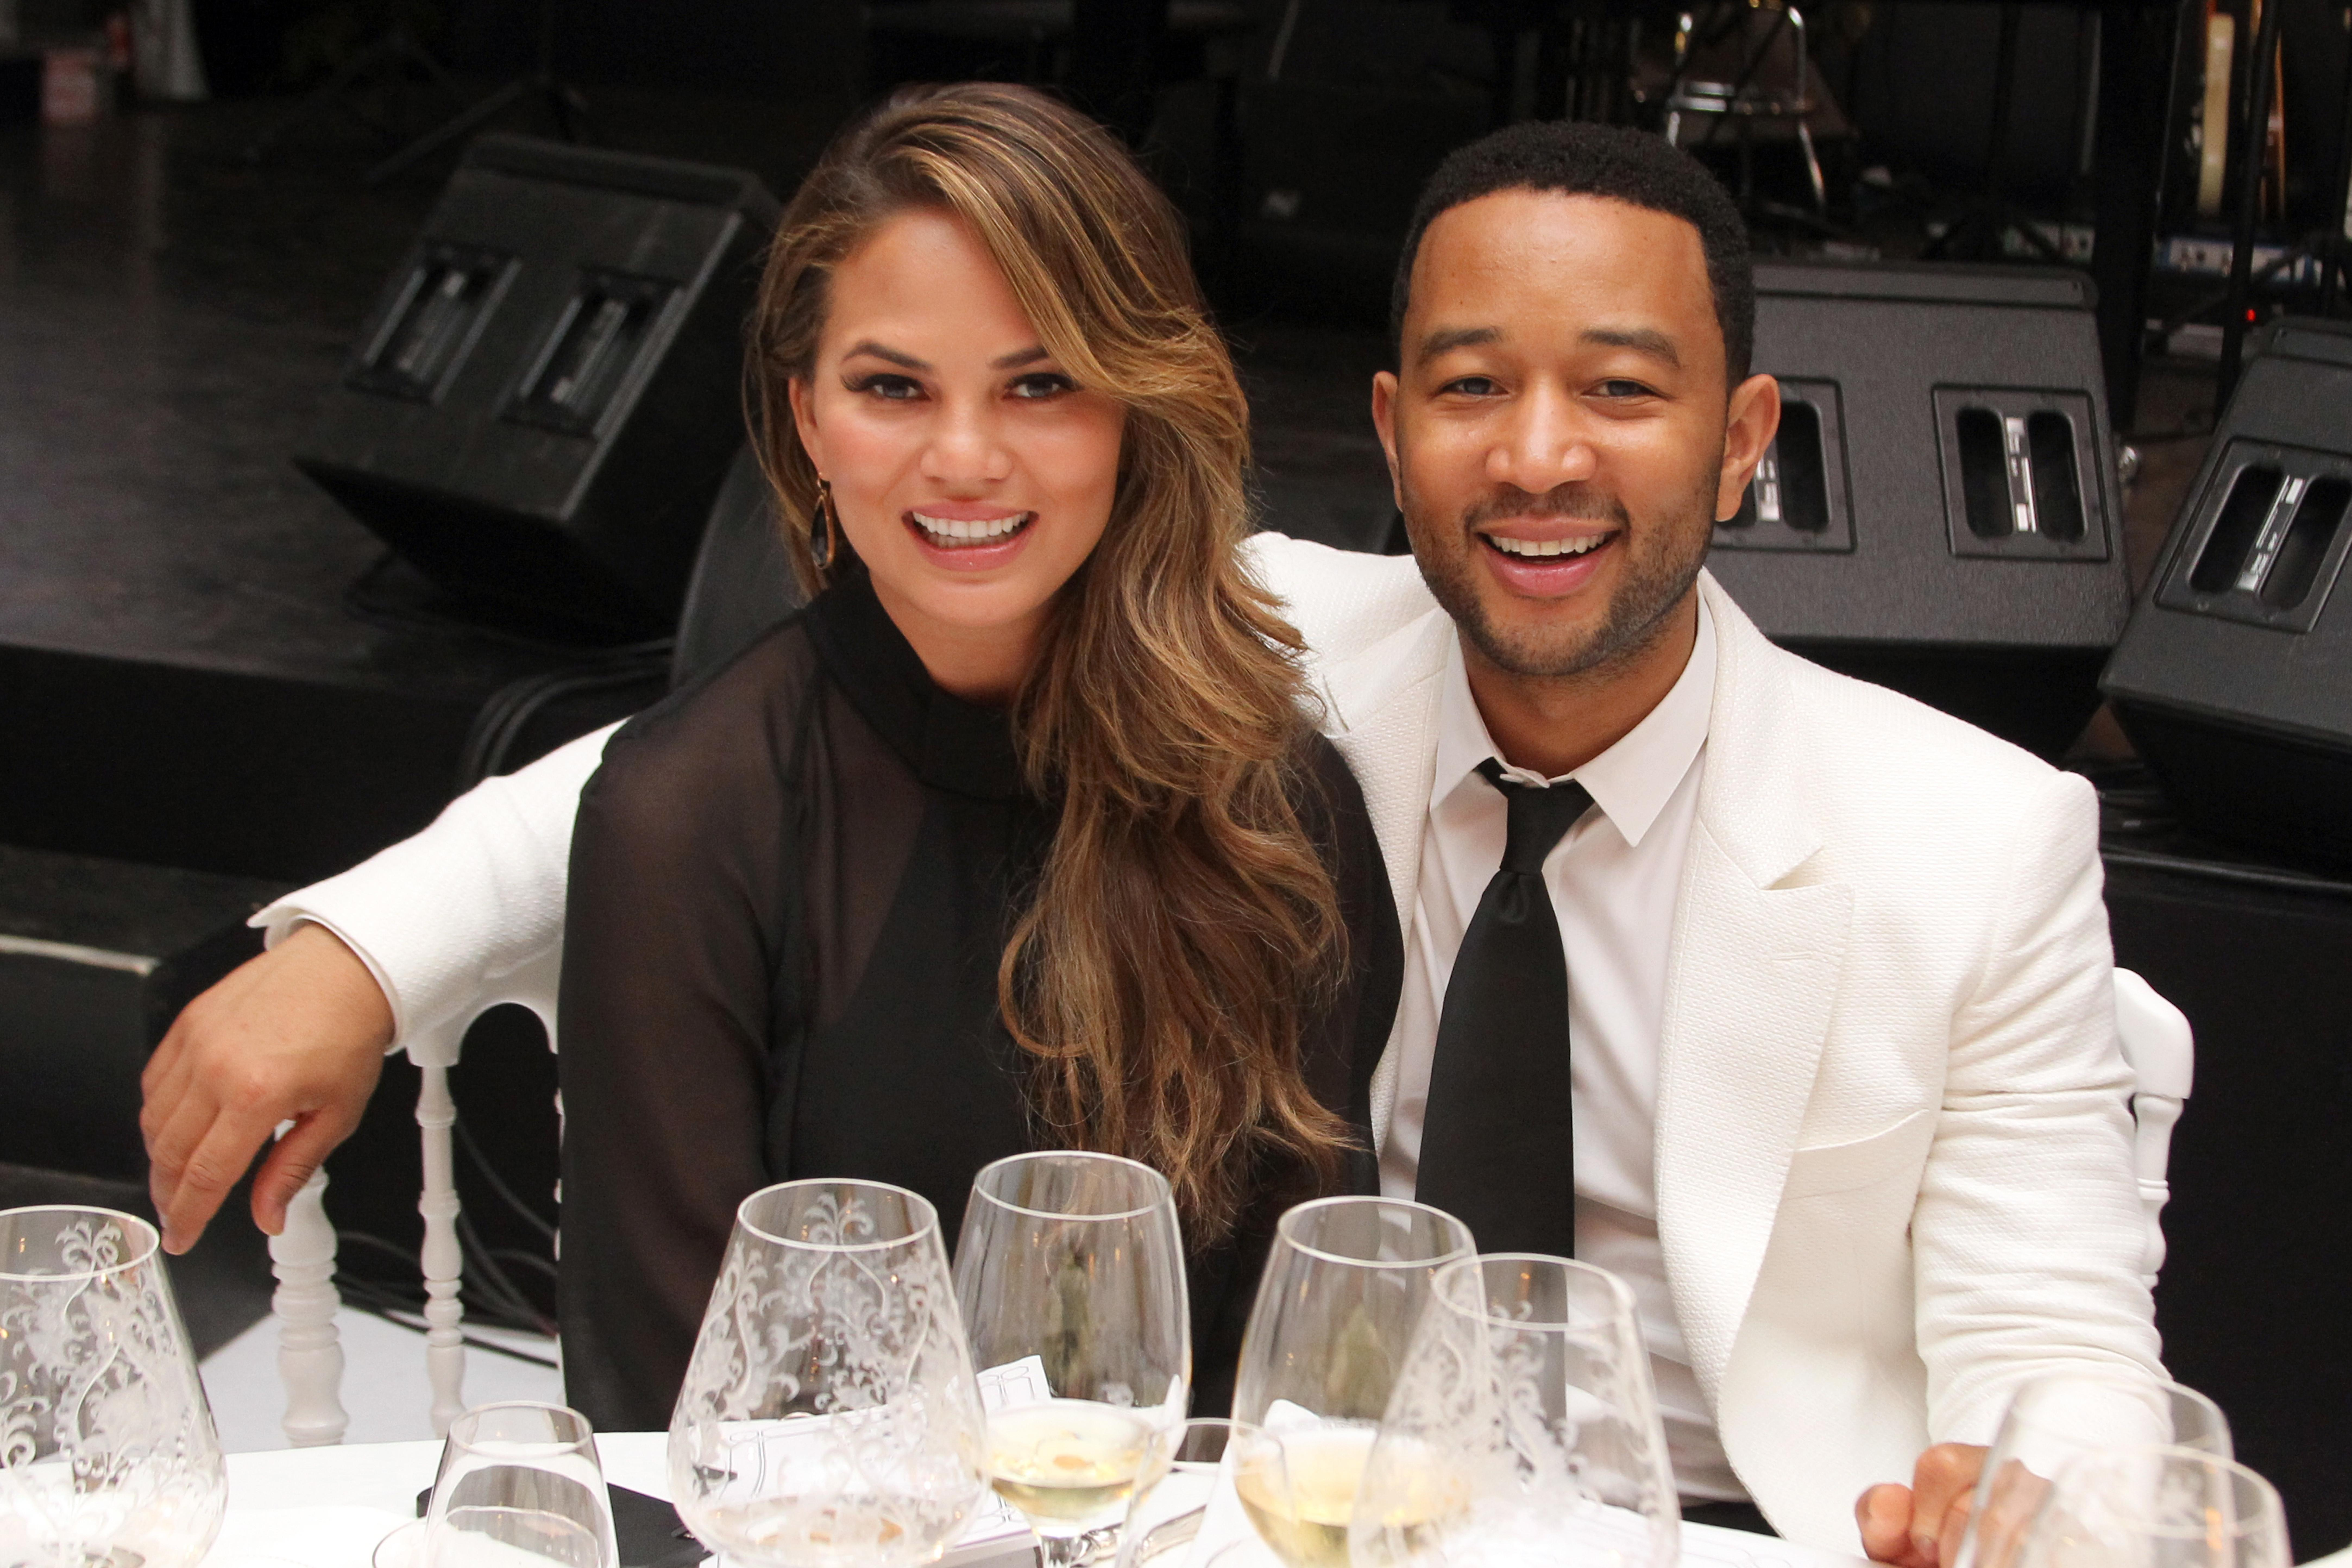 Chrissy Teigen and John Legend have a new baby on the way